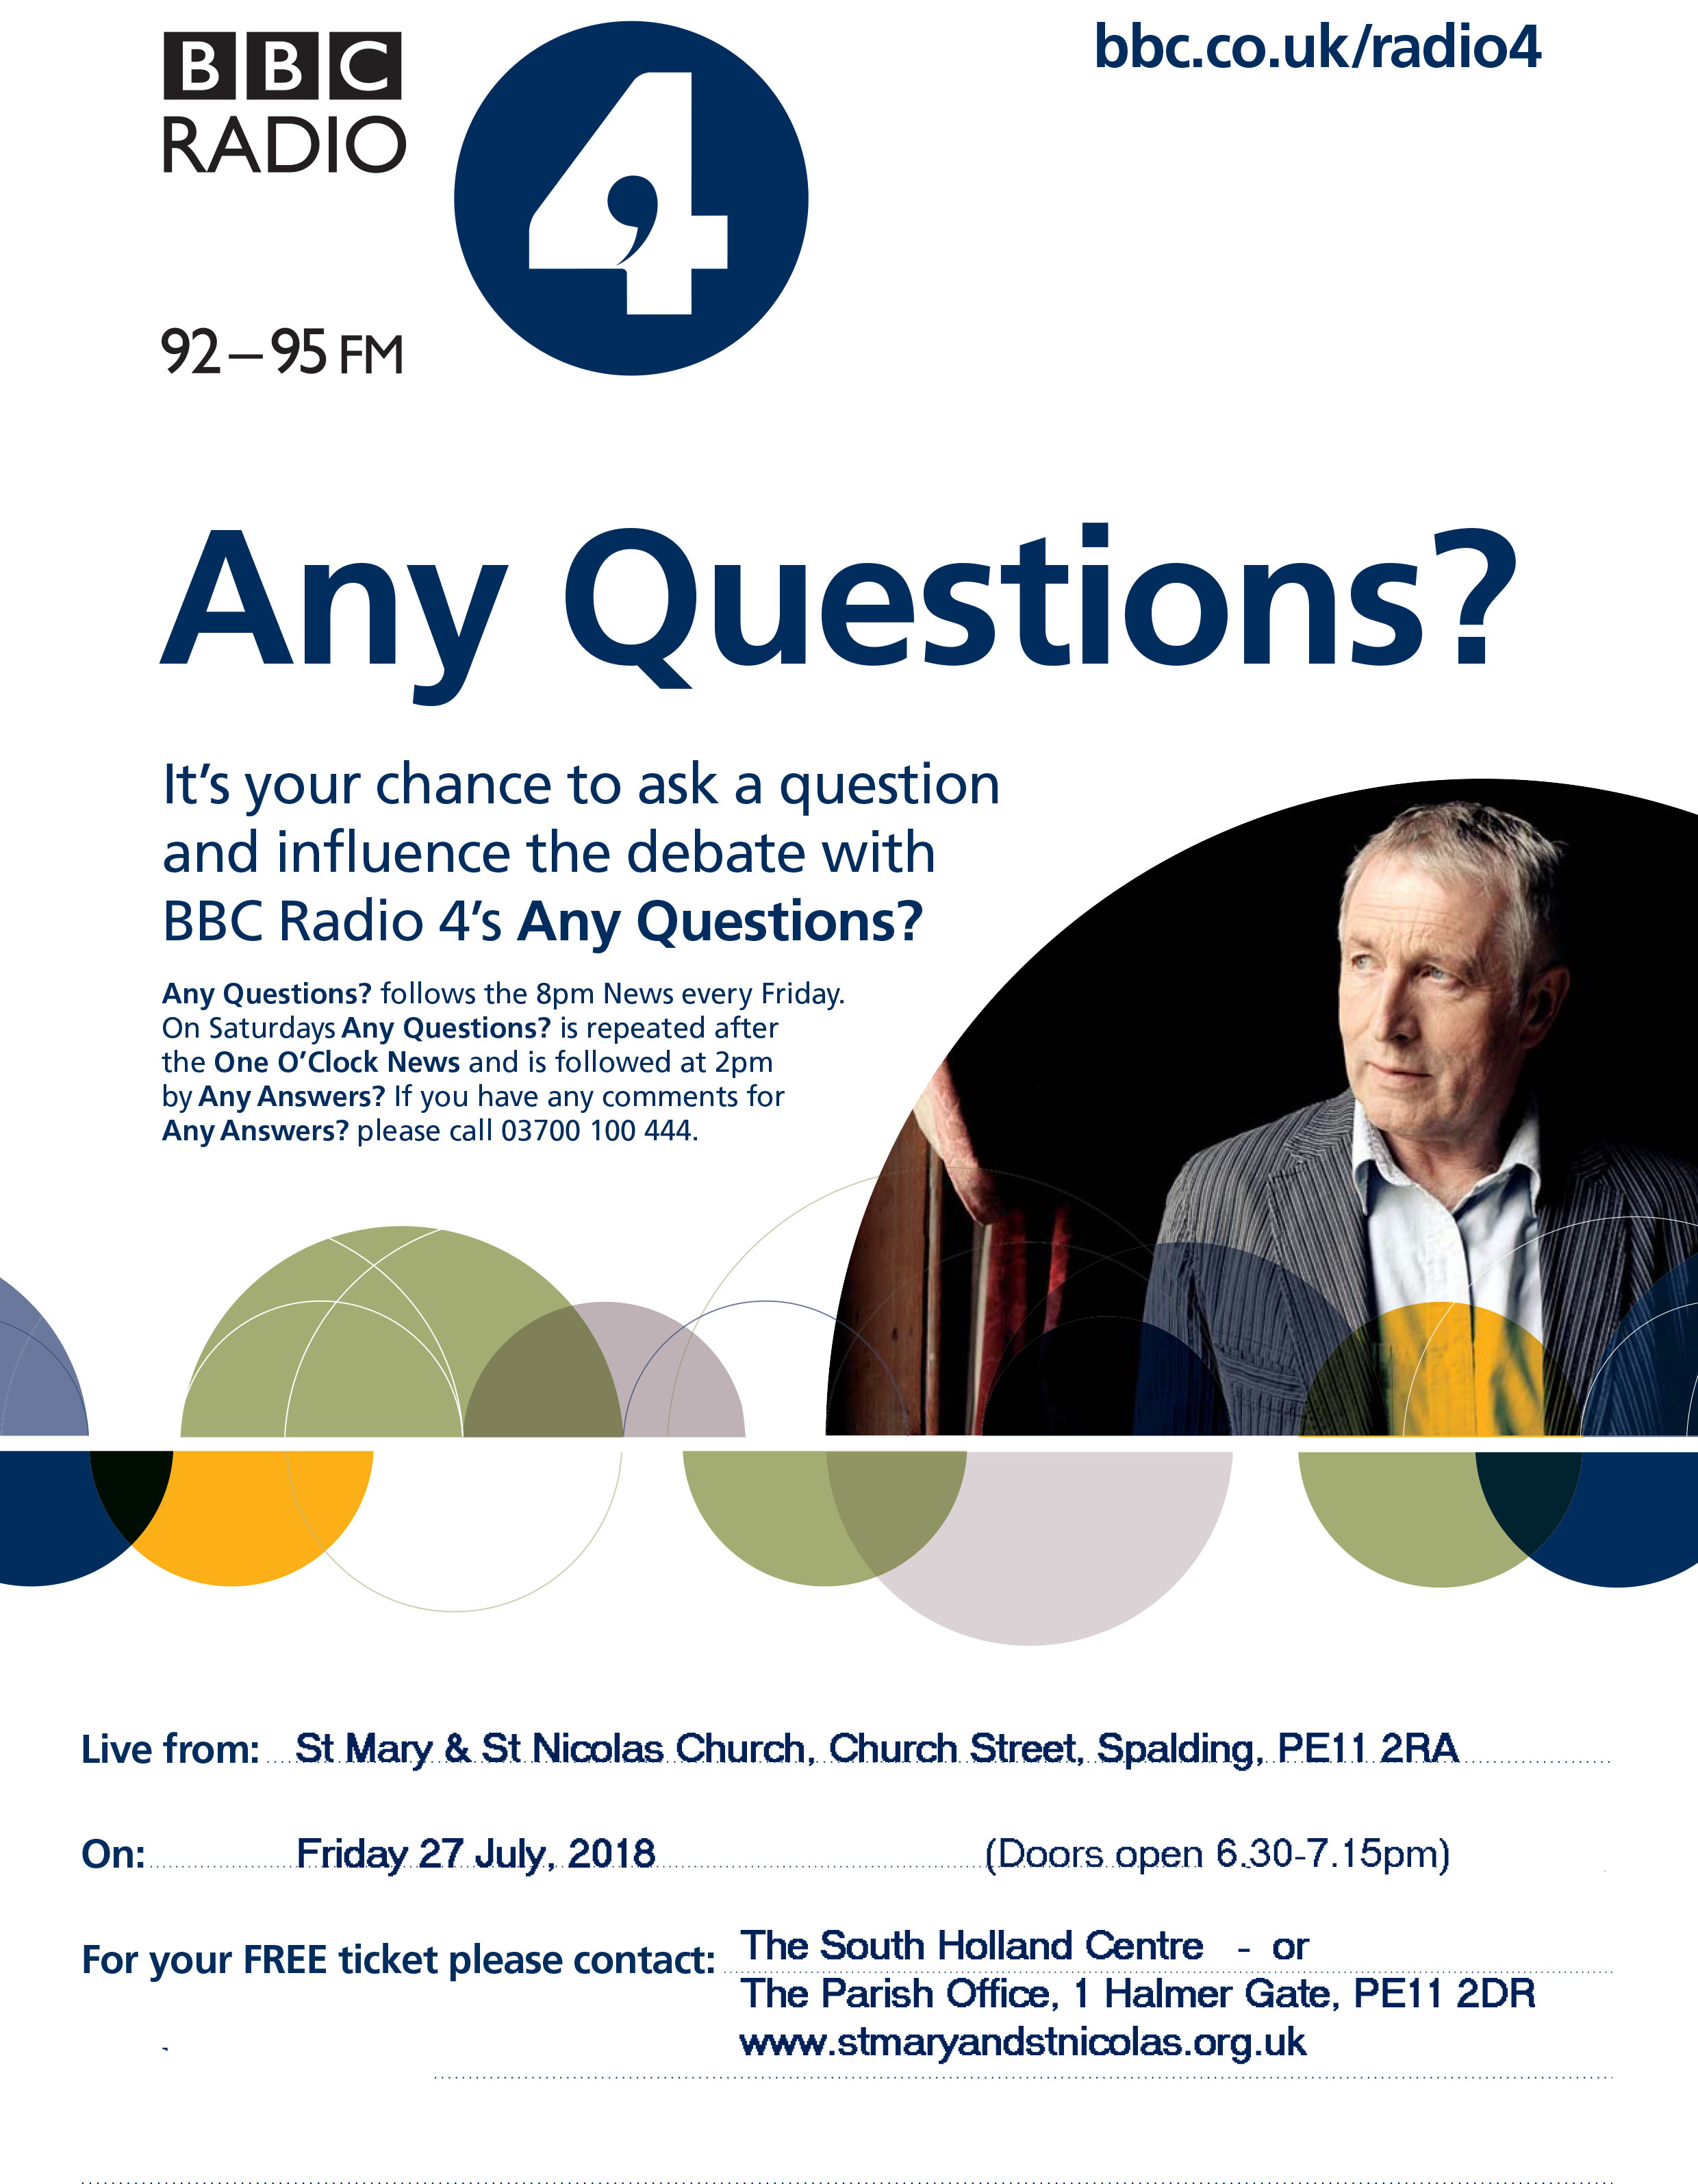 Any Questions Poster 27 July.jpg